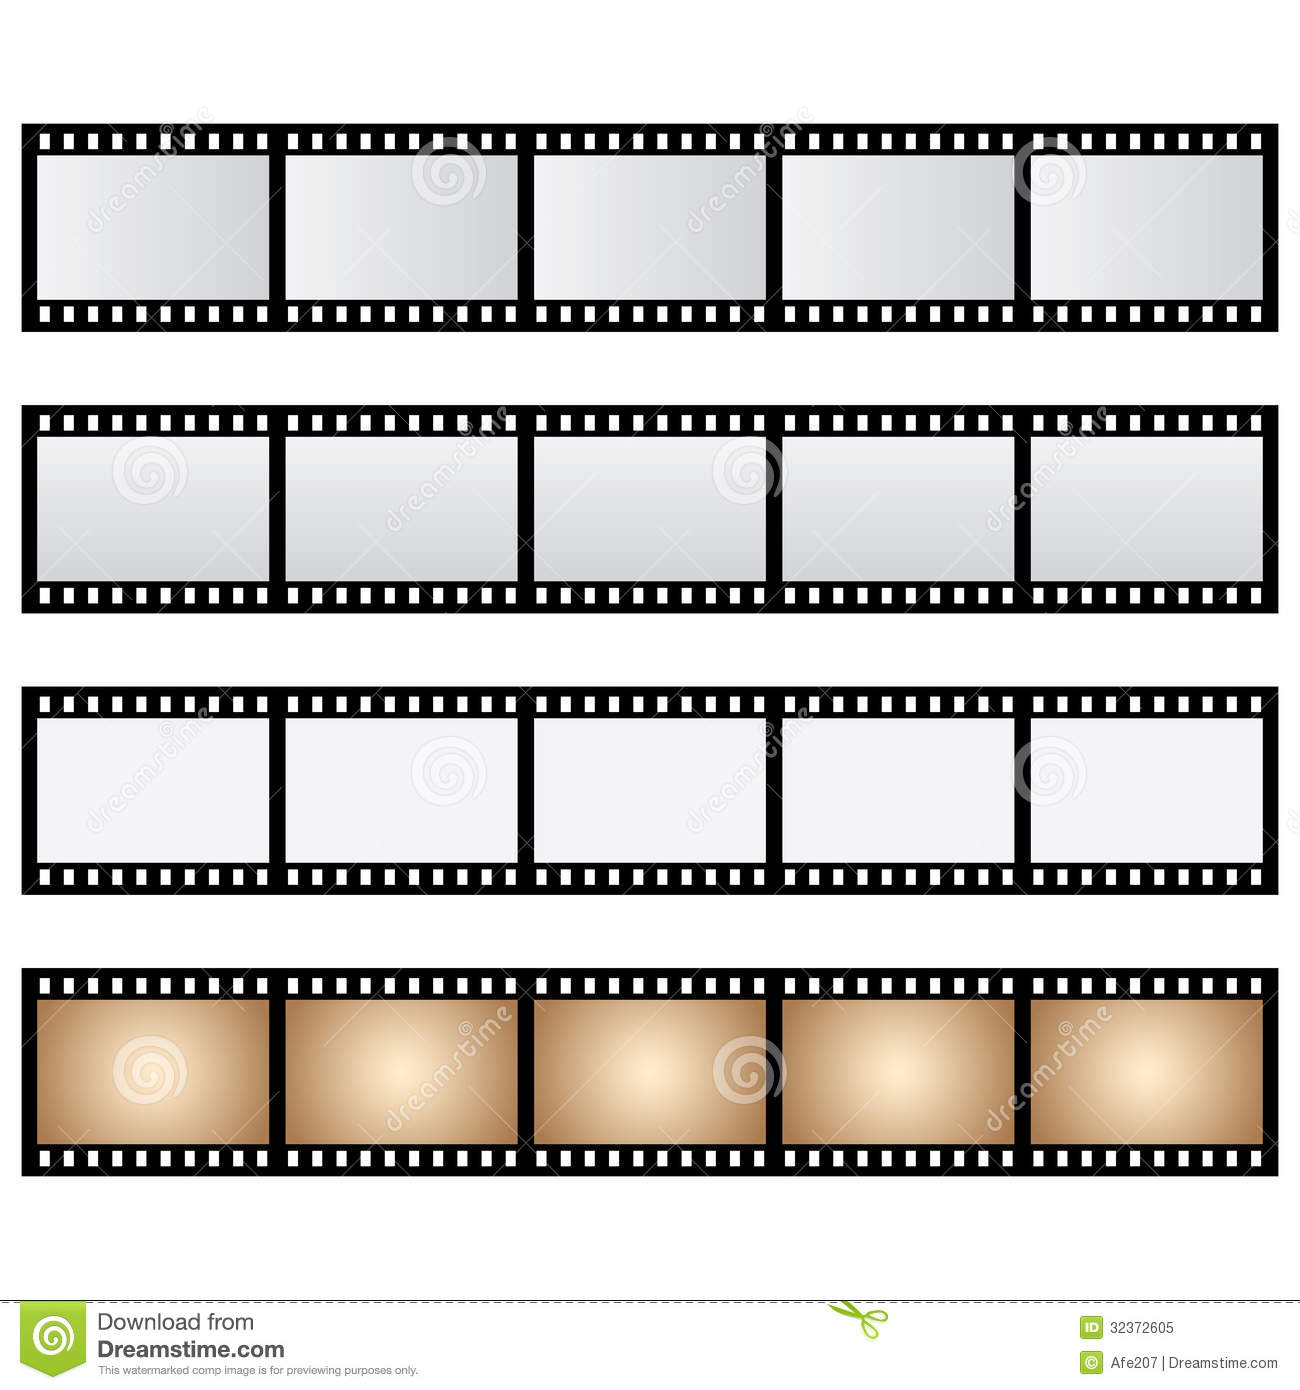 Vintage yellow tile bathroom - Vector Pack Film Strip Isolated Royalty Free Stock Photo Image